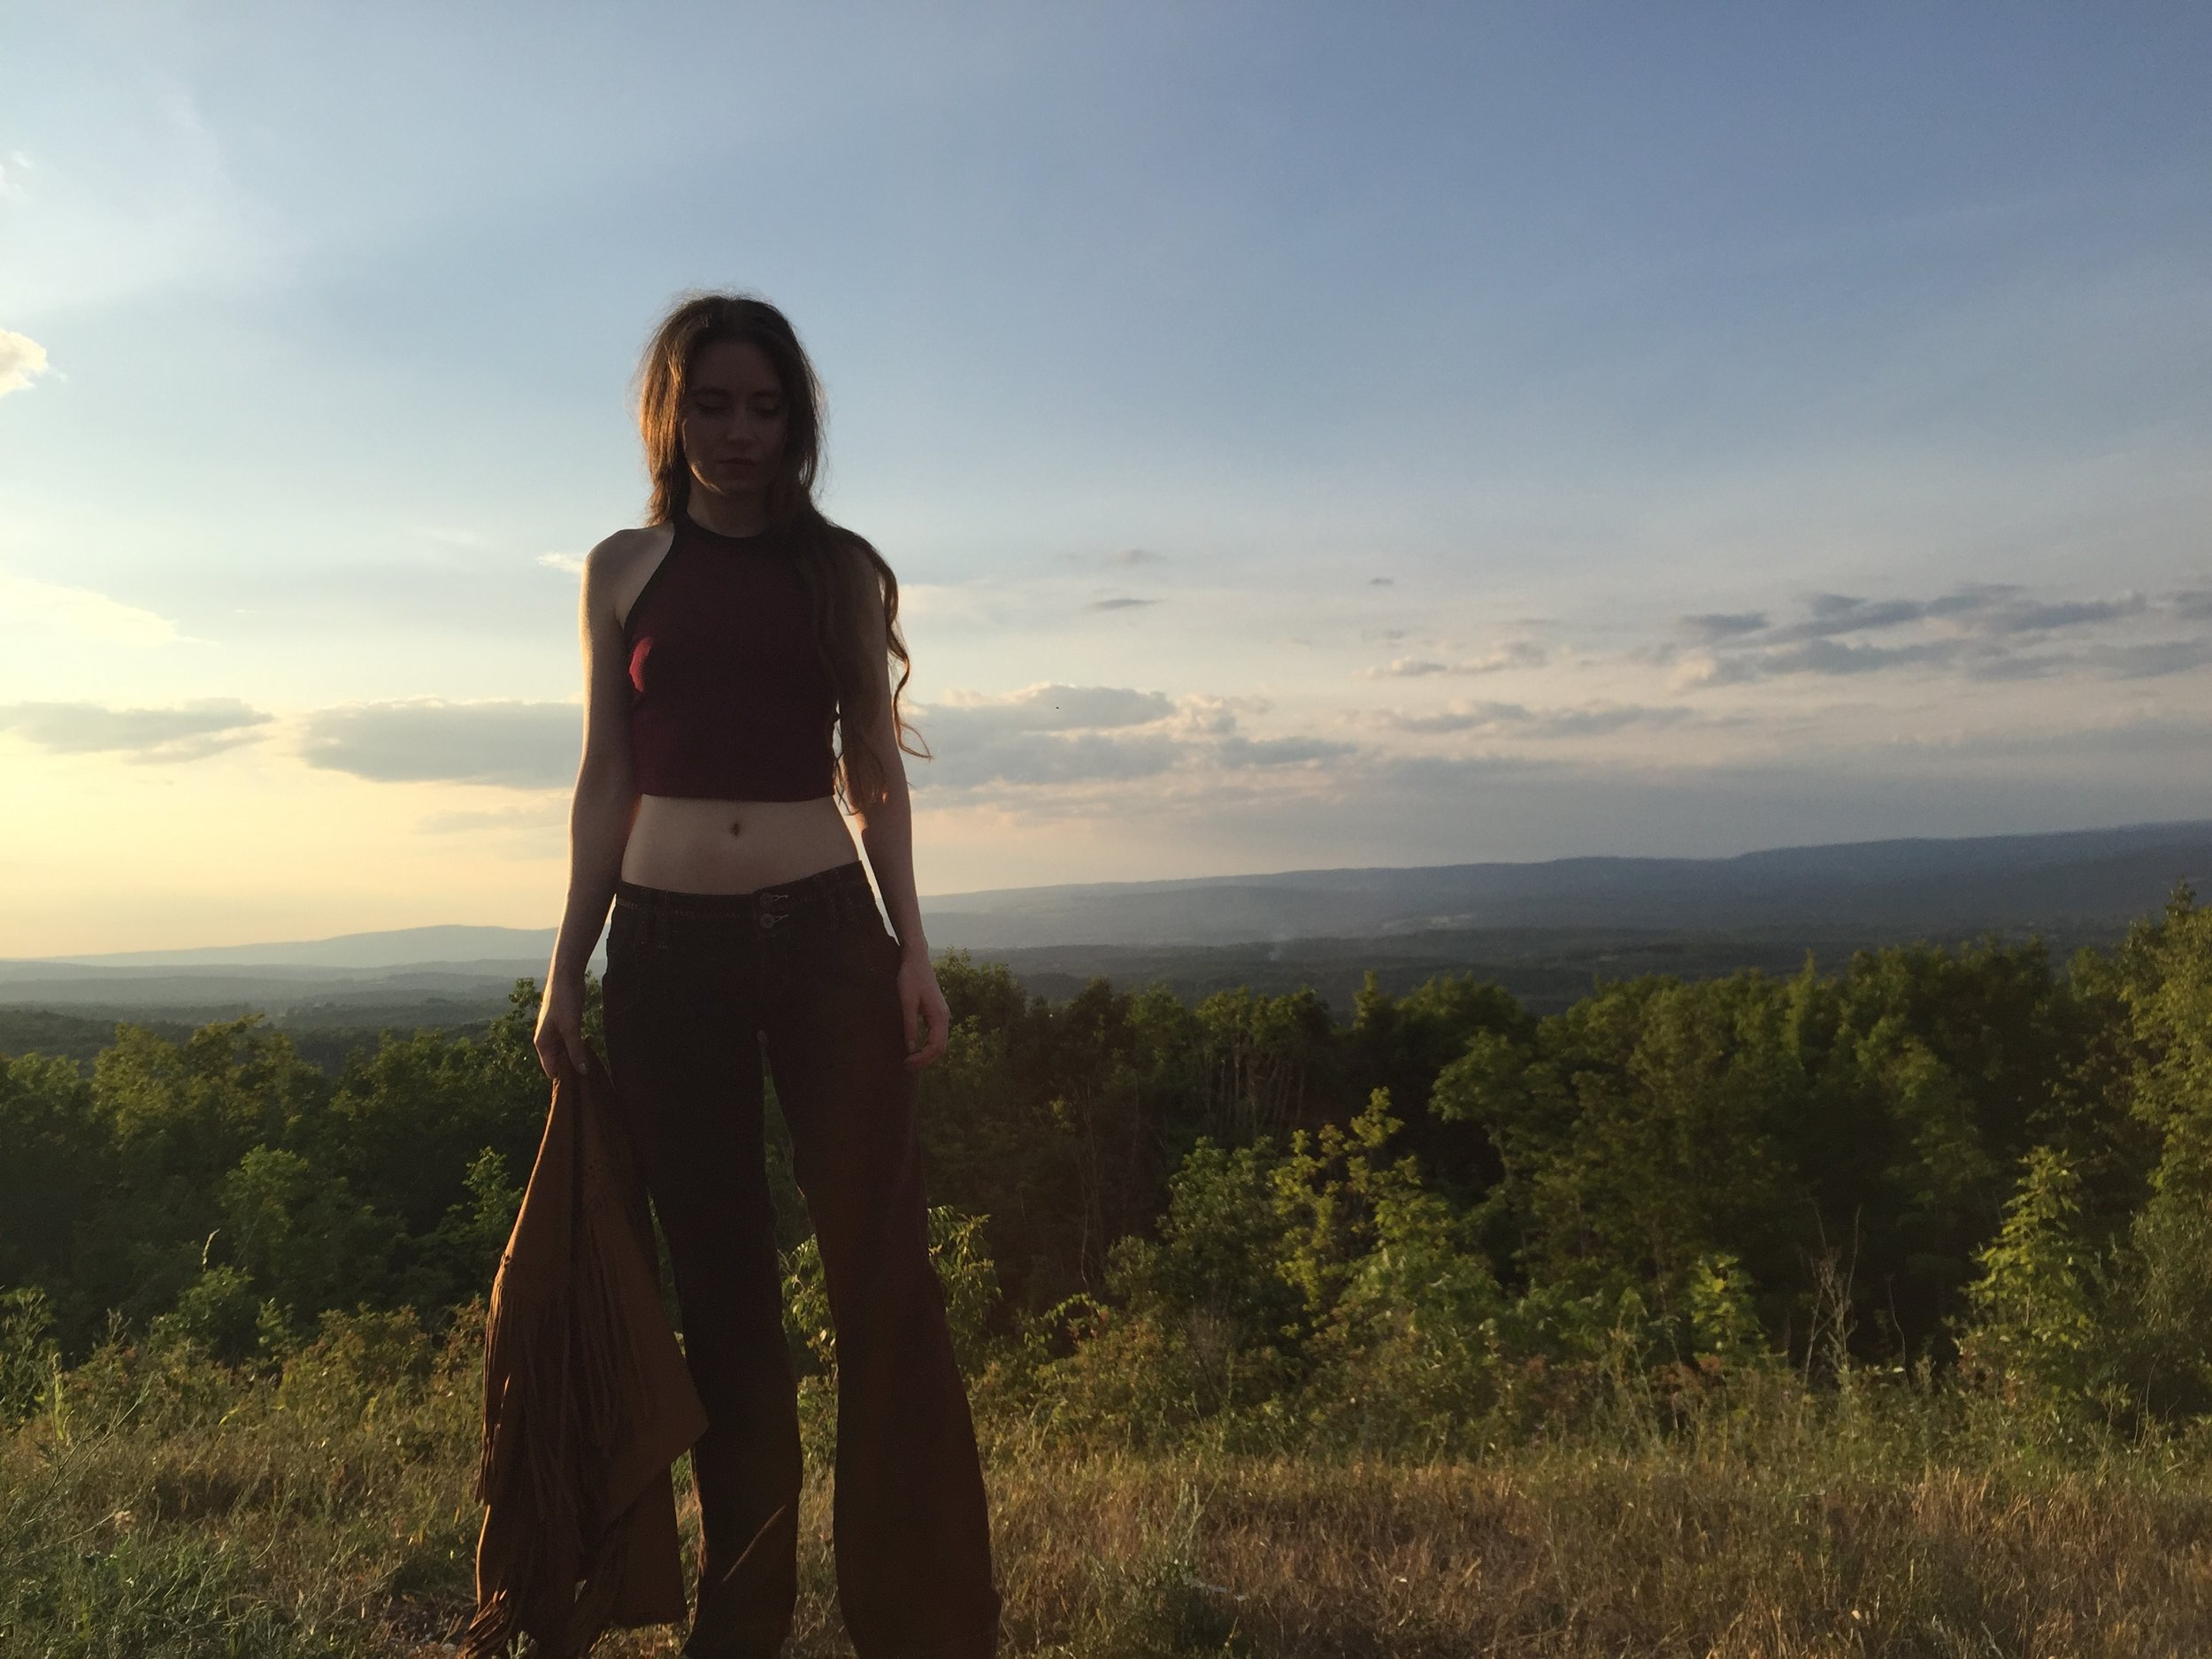 Joan Pope at Five State Lookout, Windham, NY